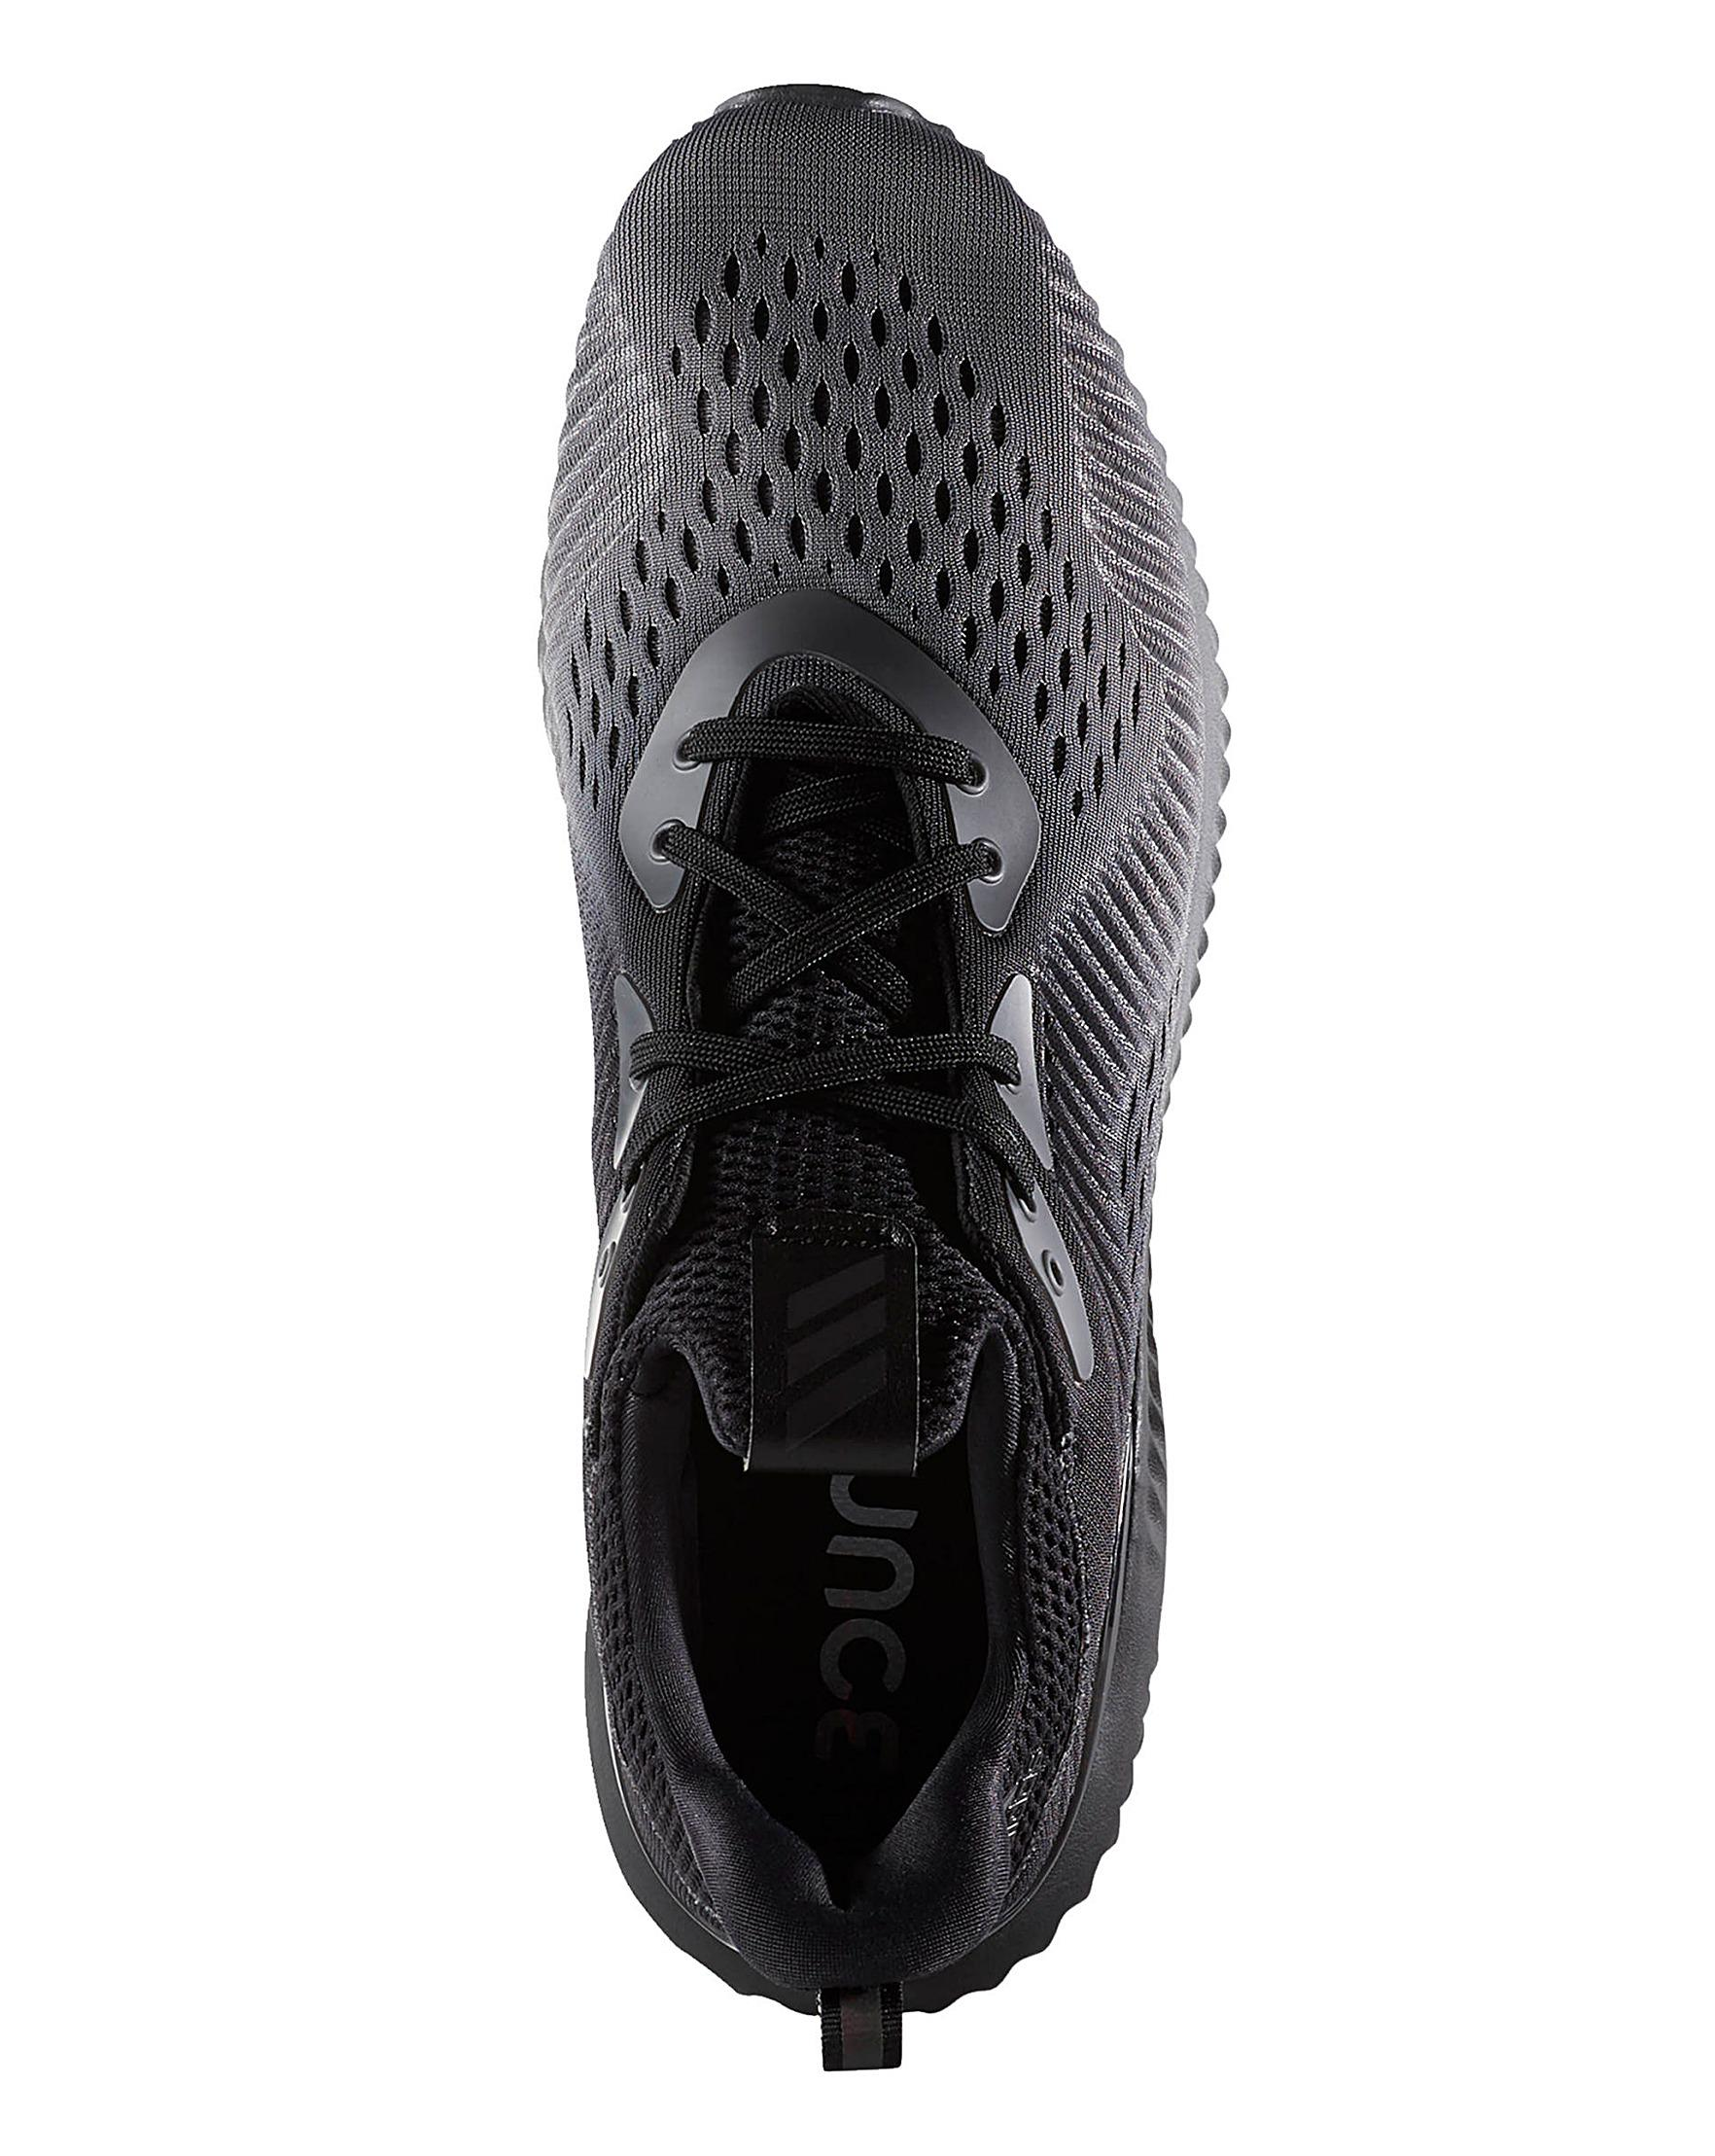 d1ac17f734f93 Adidas Alphabounce Trainers in Black for Men - Lyst